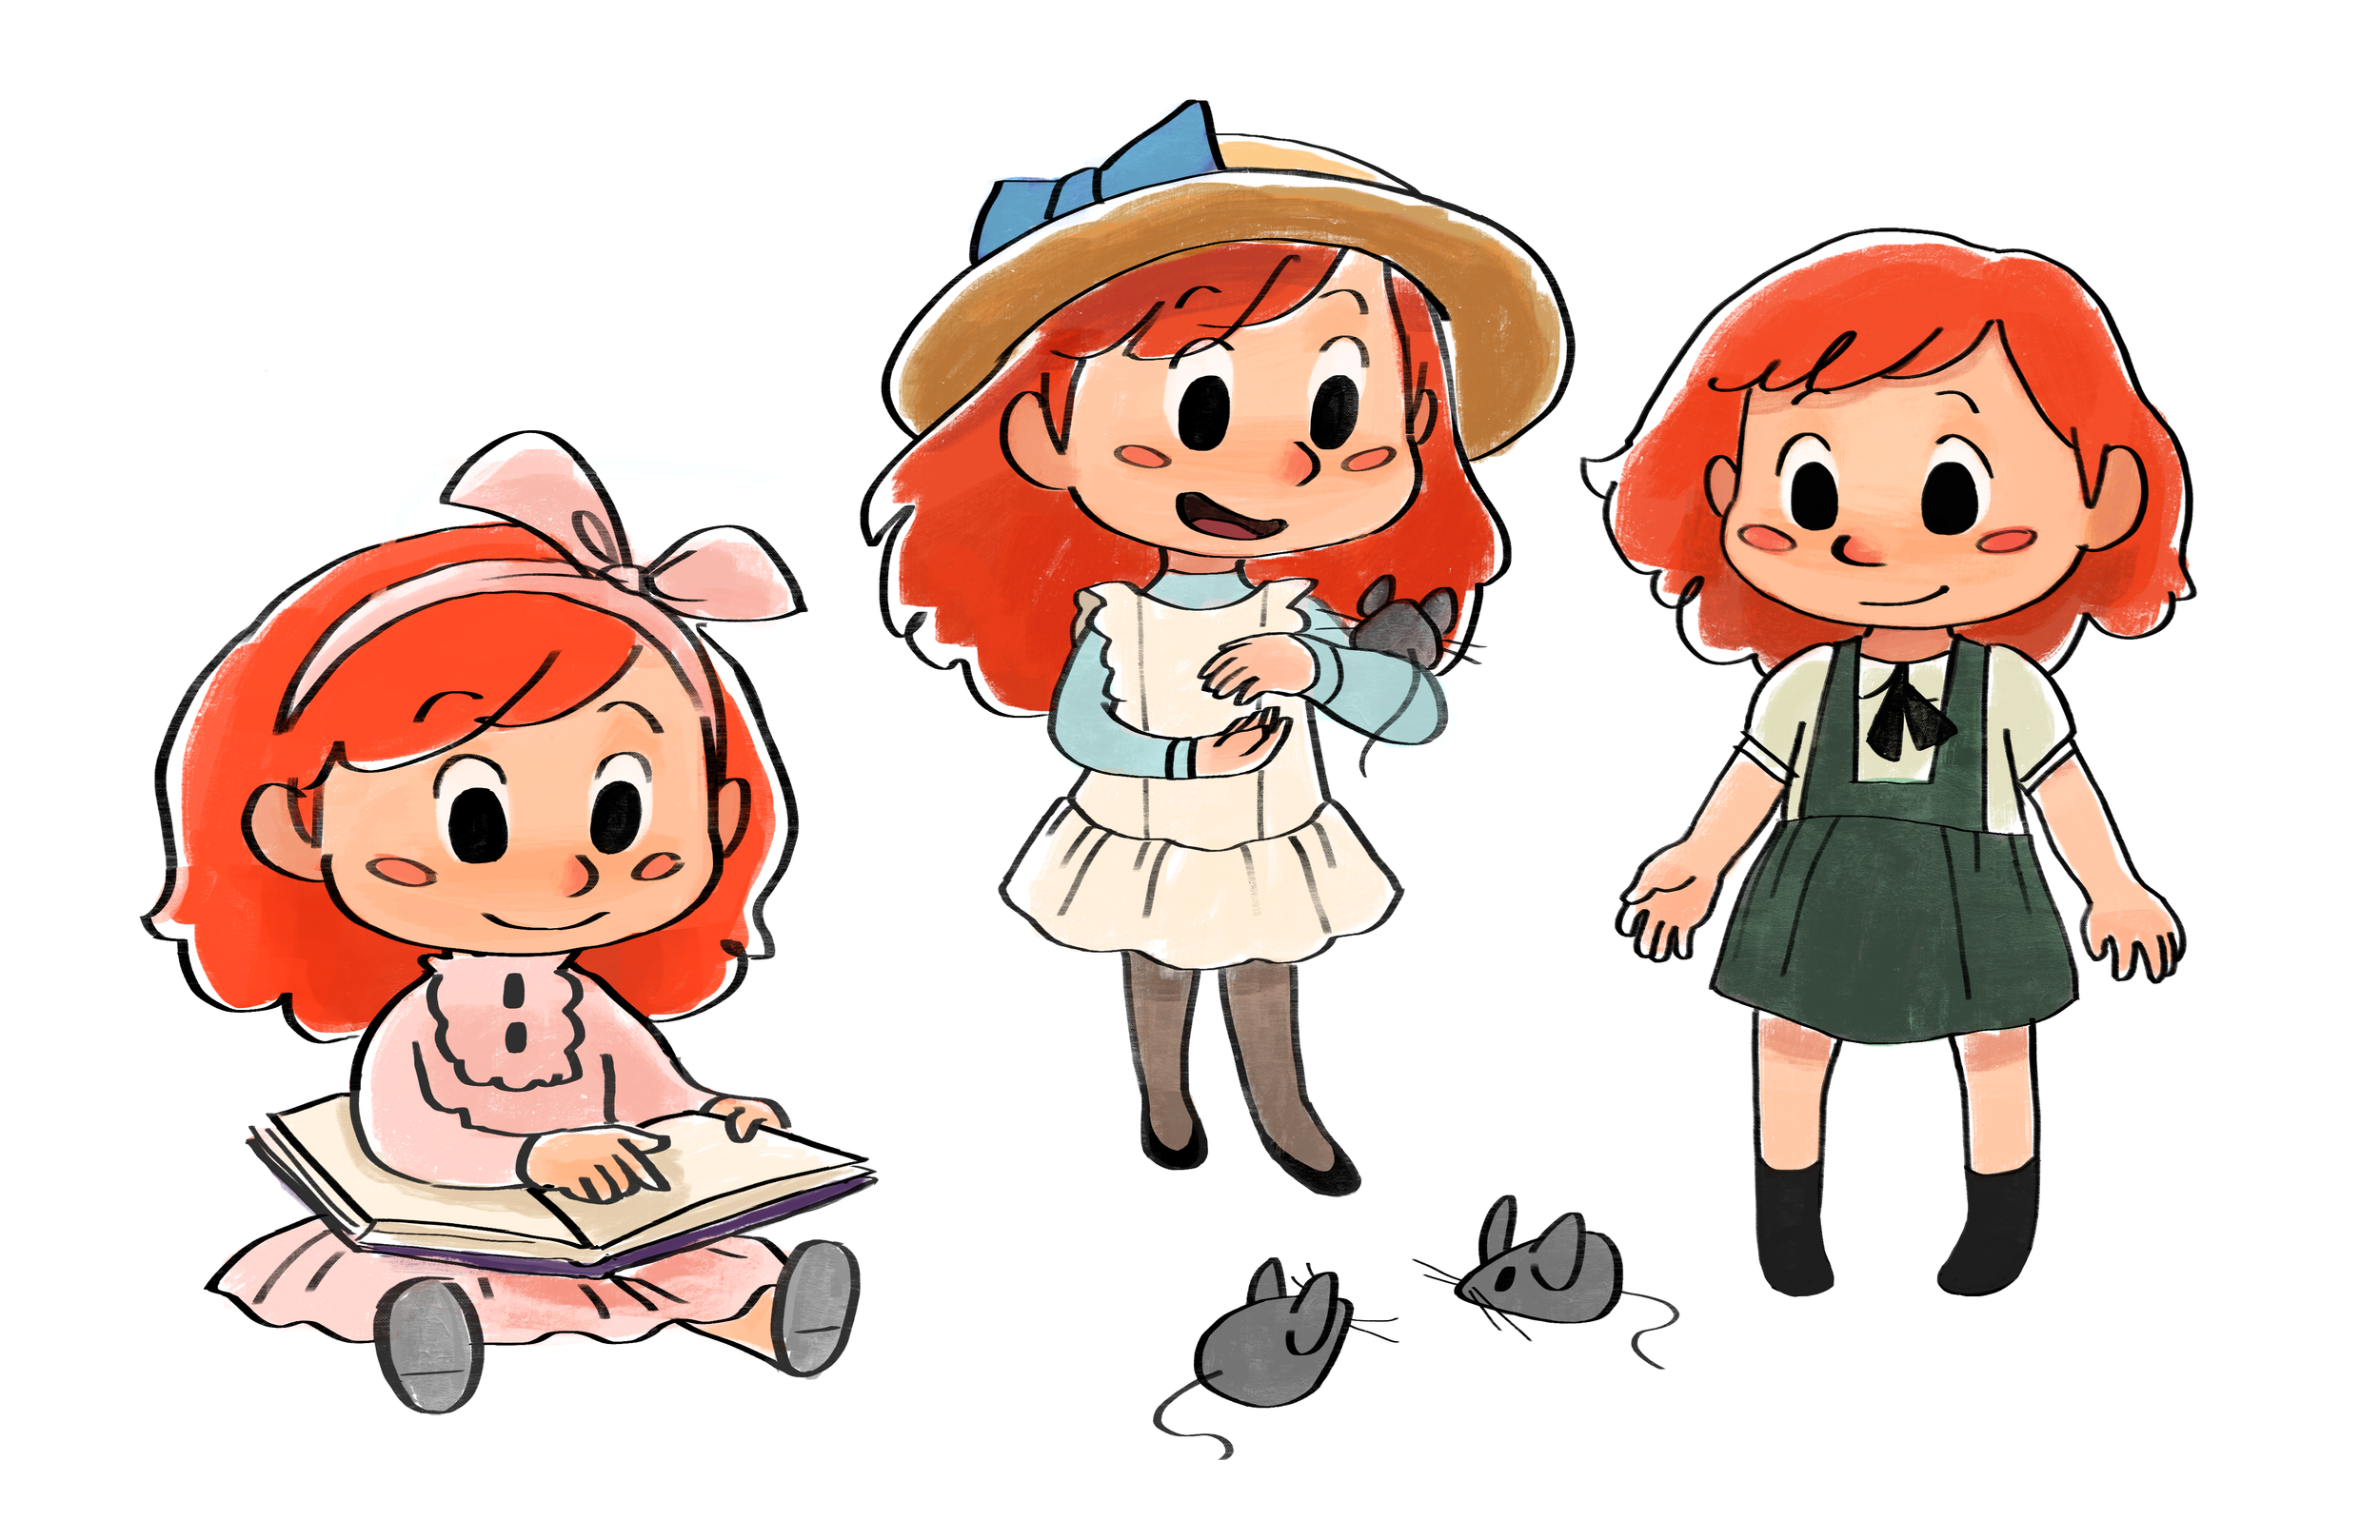 Madeline-concepts4.2.png